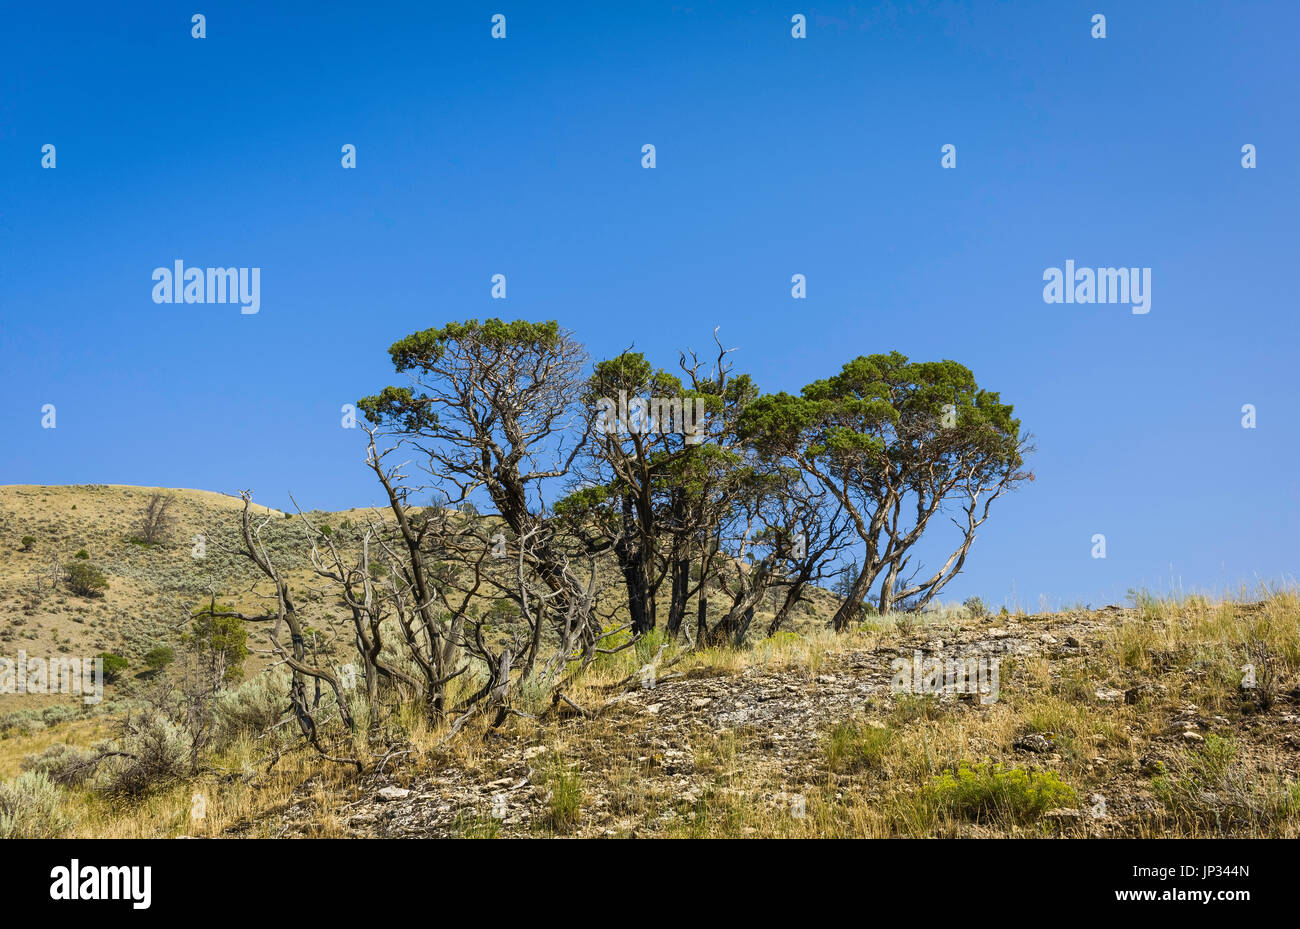 Trees surrounded by arid prairie on a hot summer day near Gardiner, Montana, USA. - Stock Image